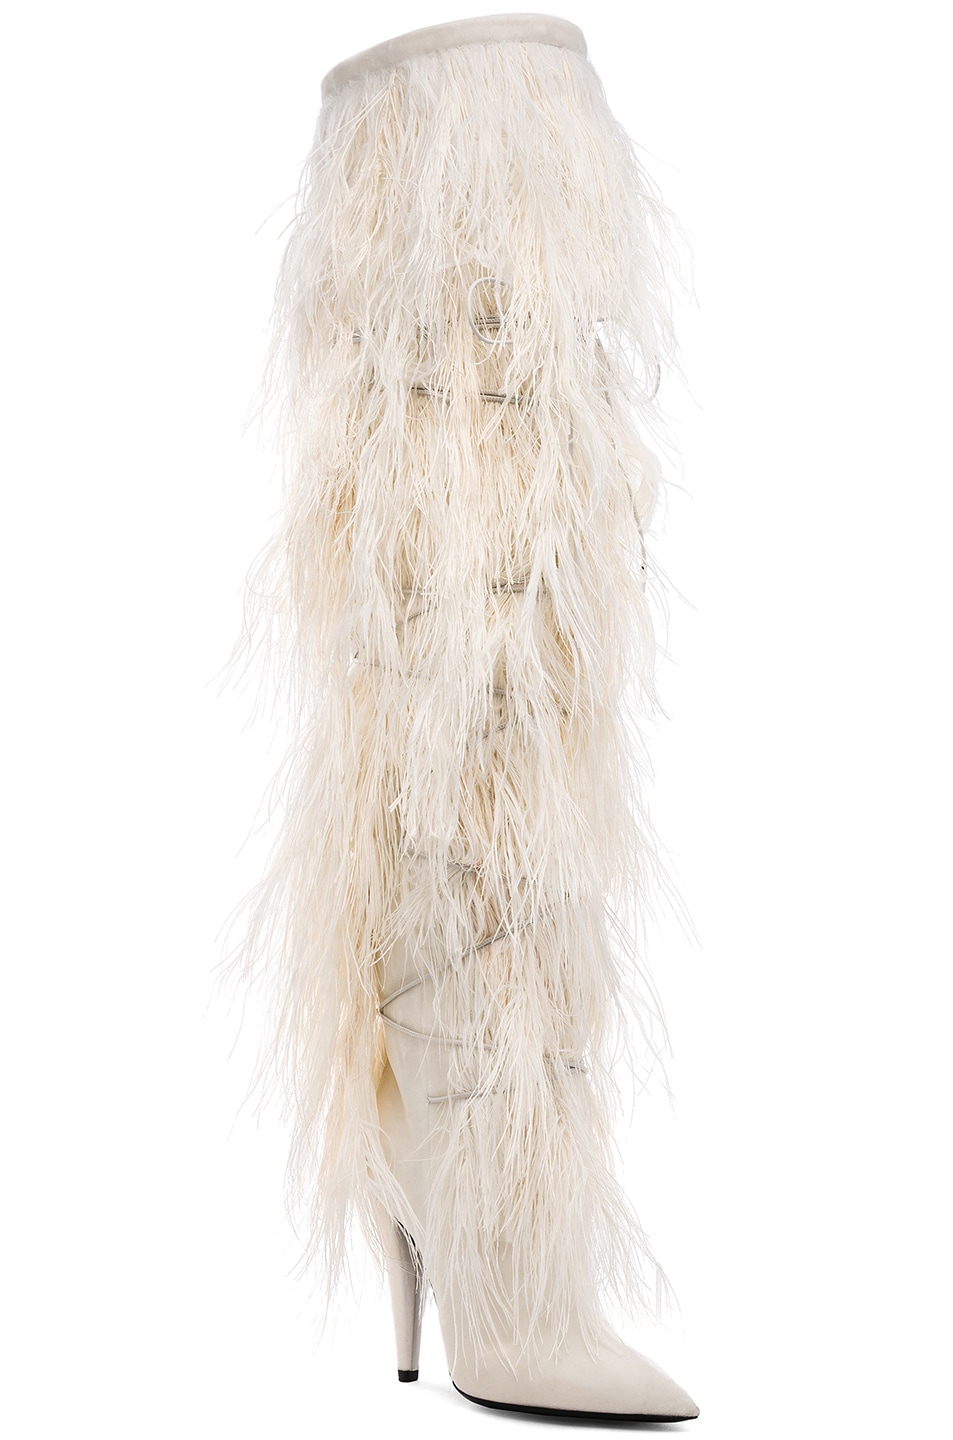 Saint LaurentEra Feather Embellished Velvet Yeti Thigh High Boots in . 3r5P6lSYBf